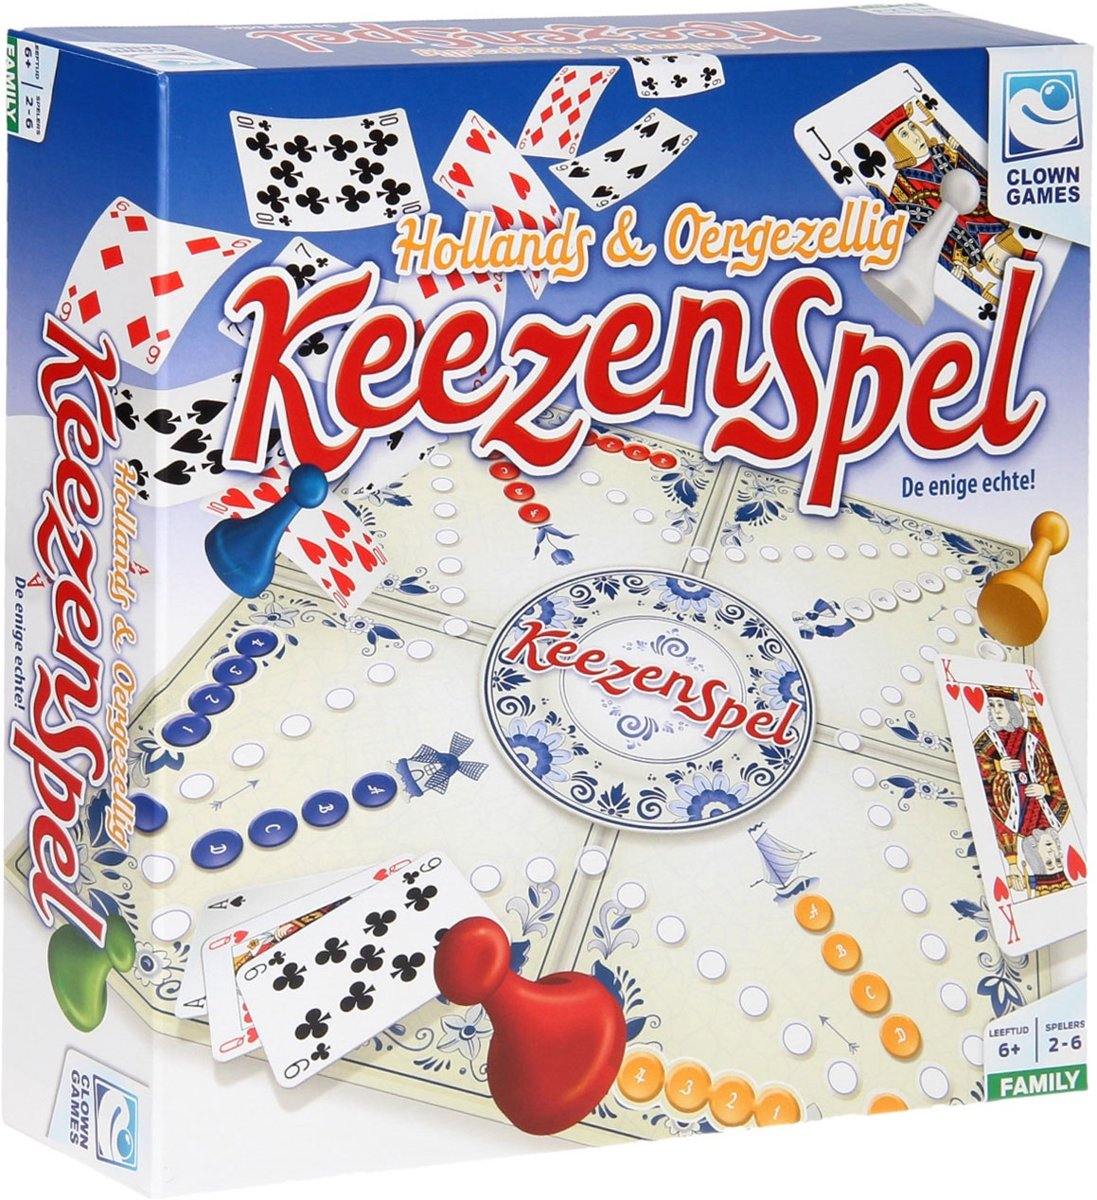 Clown Keezenspel - Bordspel